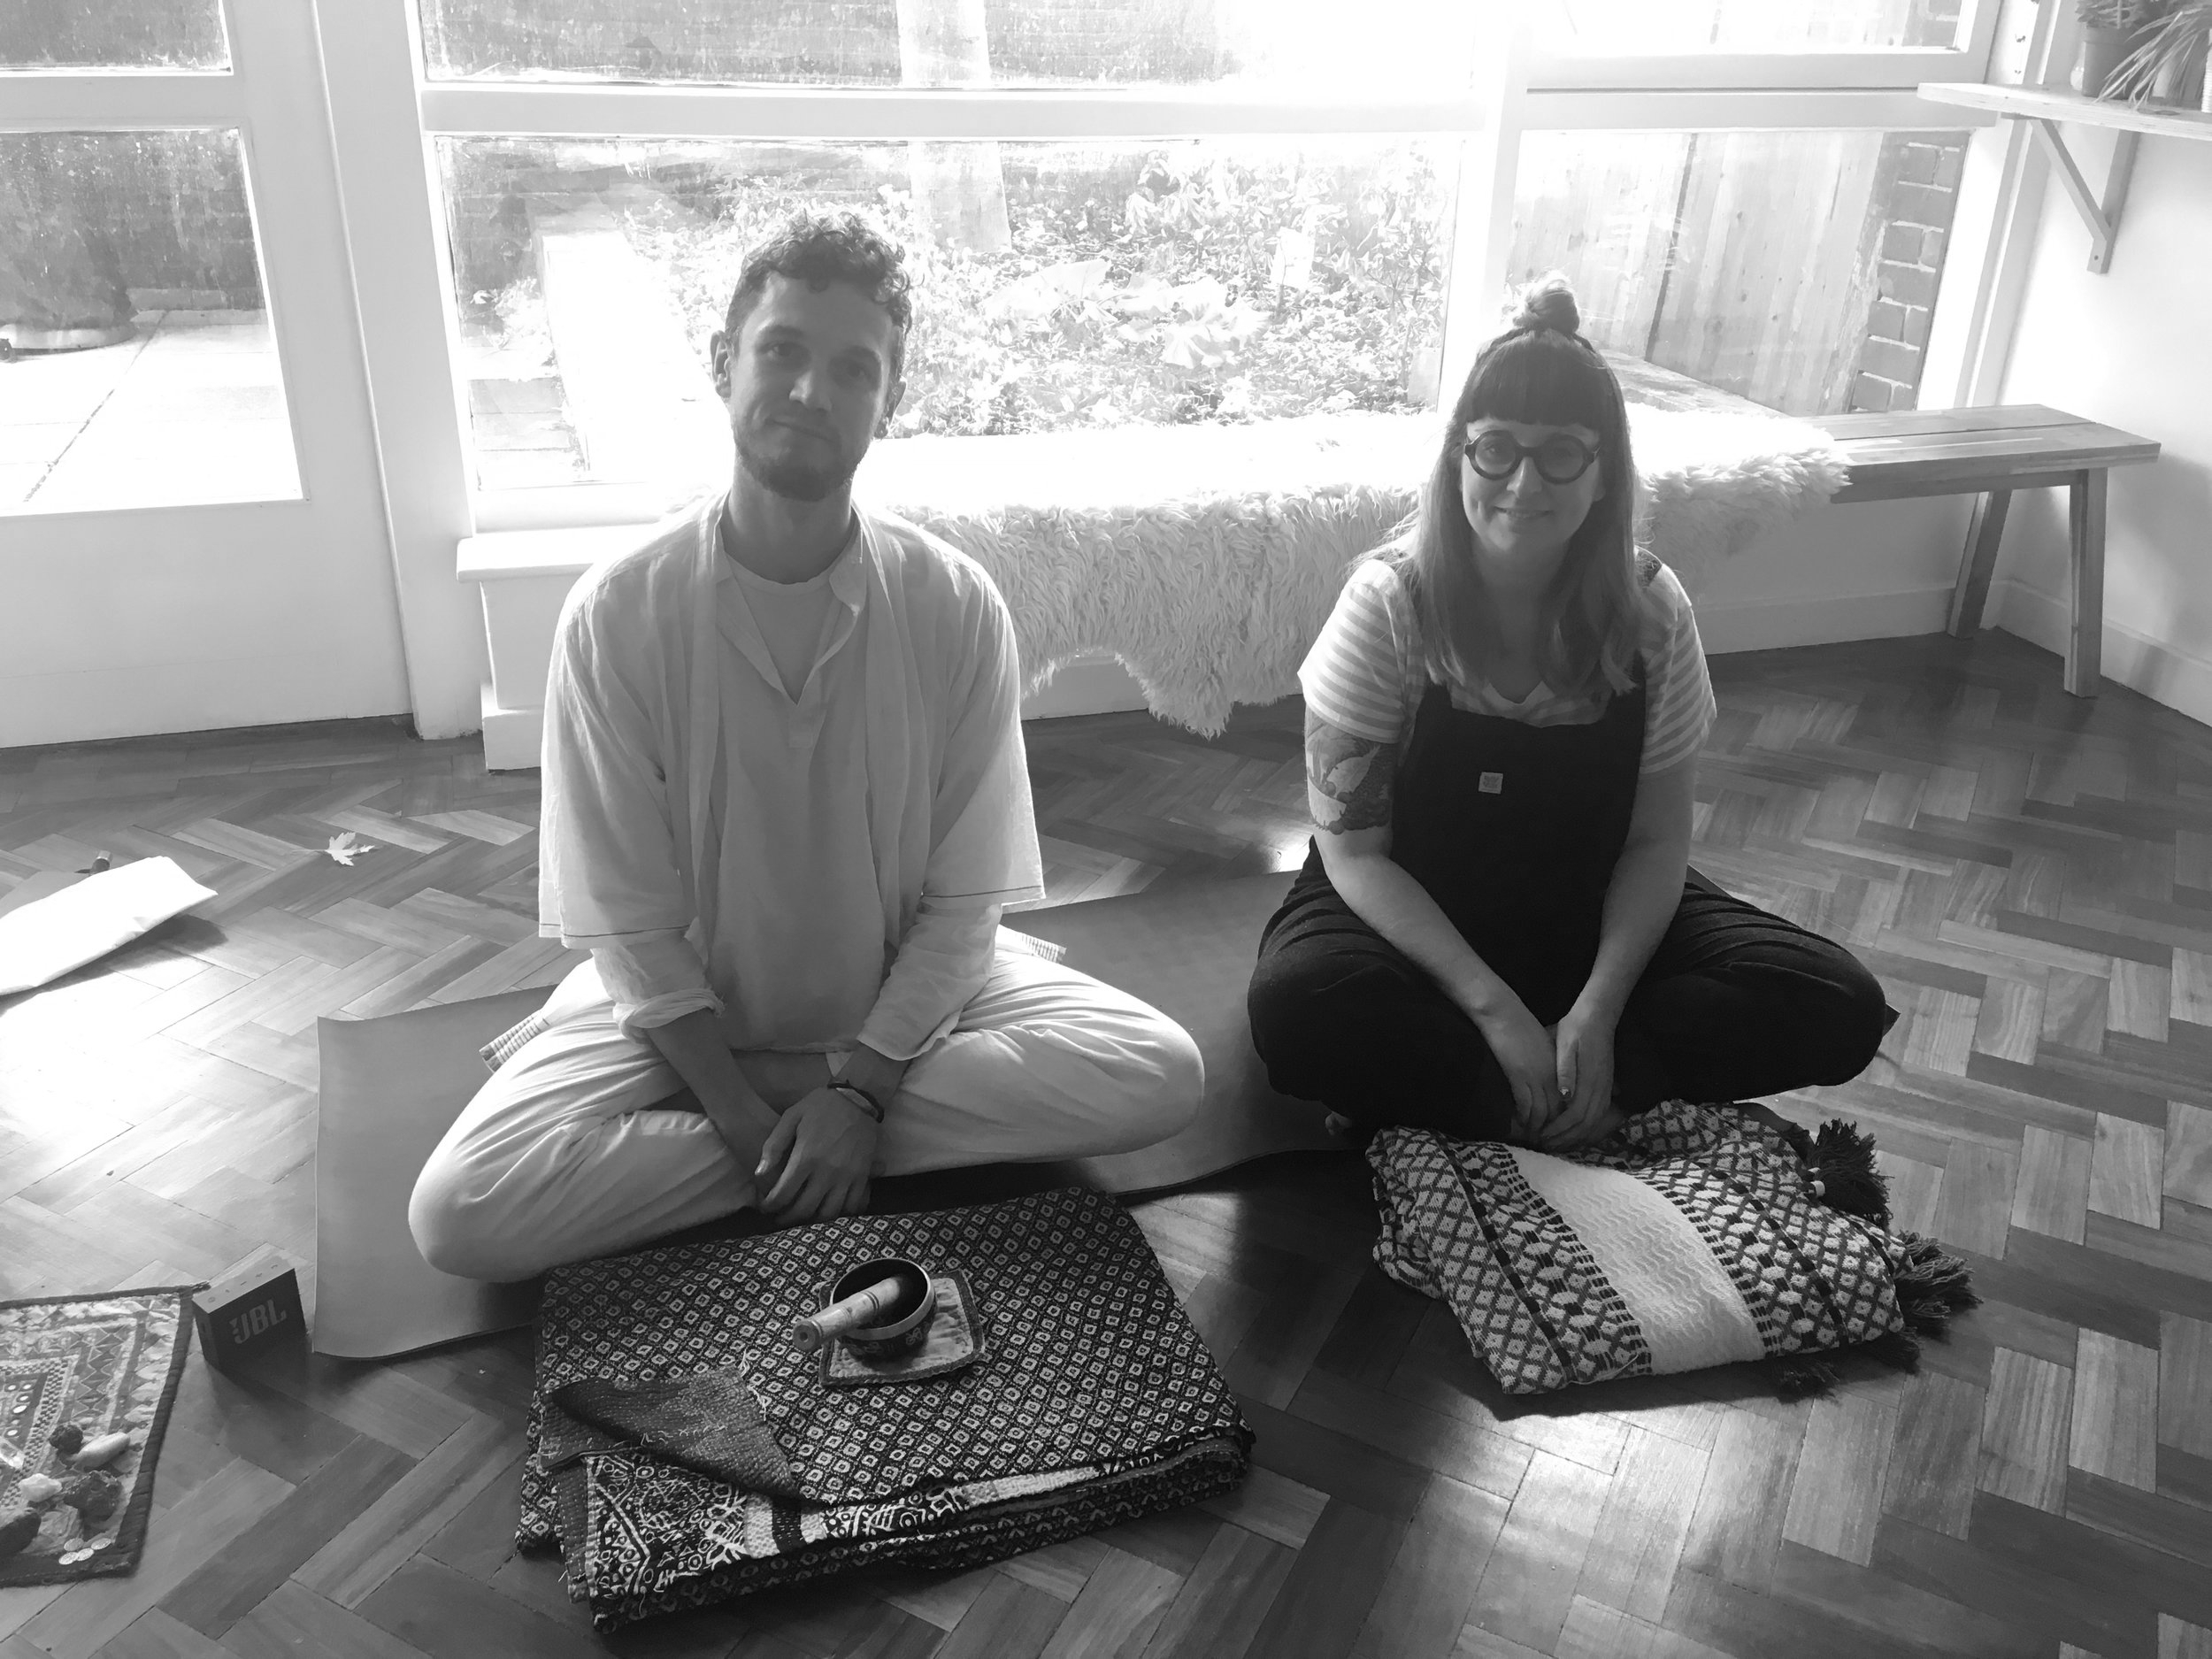 Past & Present Retreat - Hosted with Fiongal of The Wellness Foundry, we supported past life regression experienced through a guided meditation with journalling, followed by massage treatments, yin yoga & vegan treats.